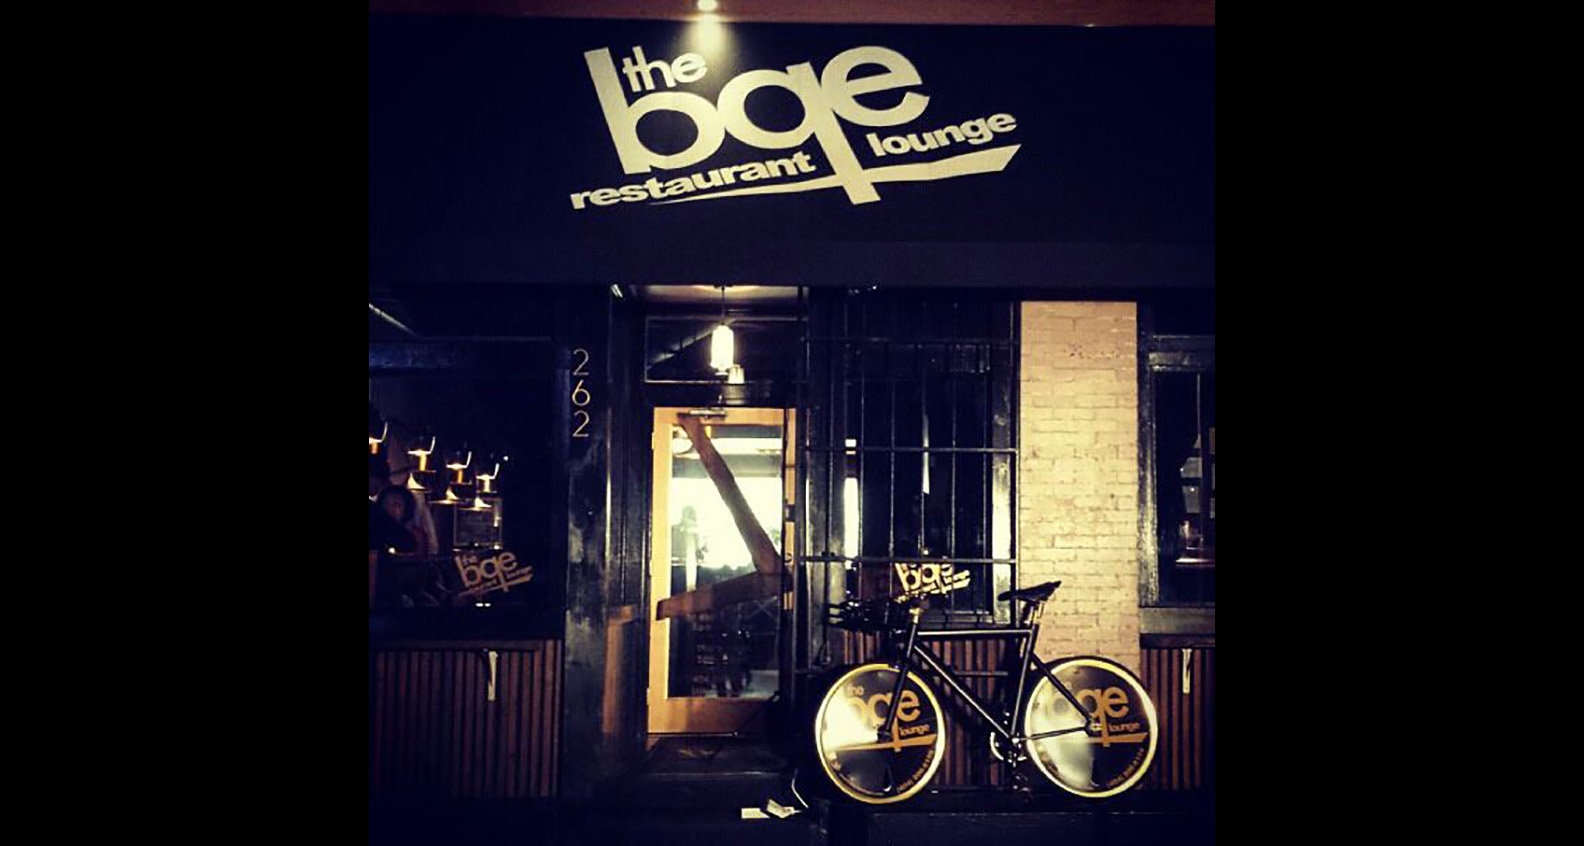 BQE Restaurant & Lounge